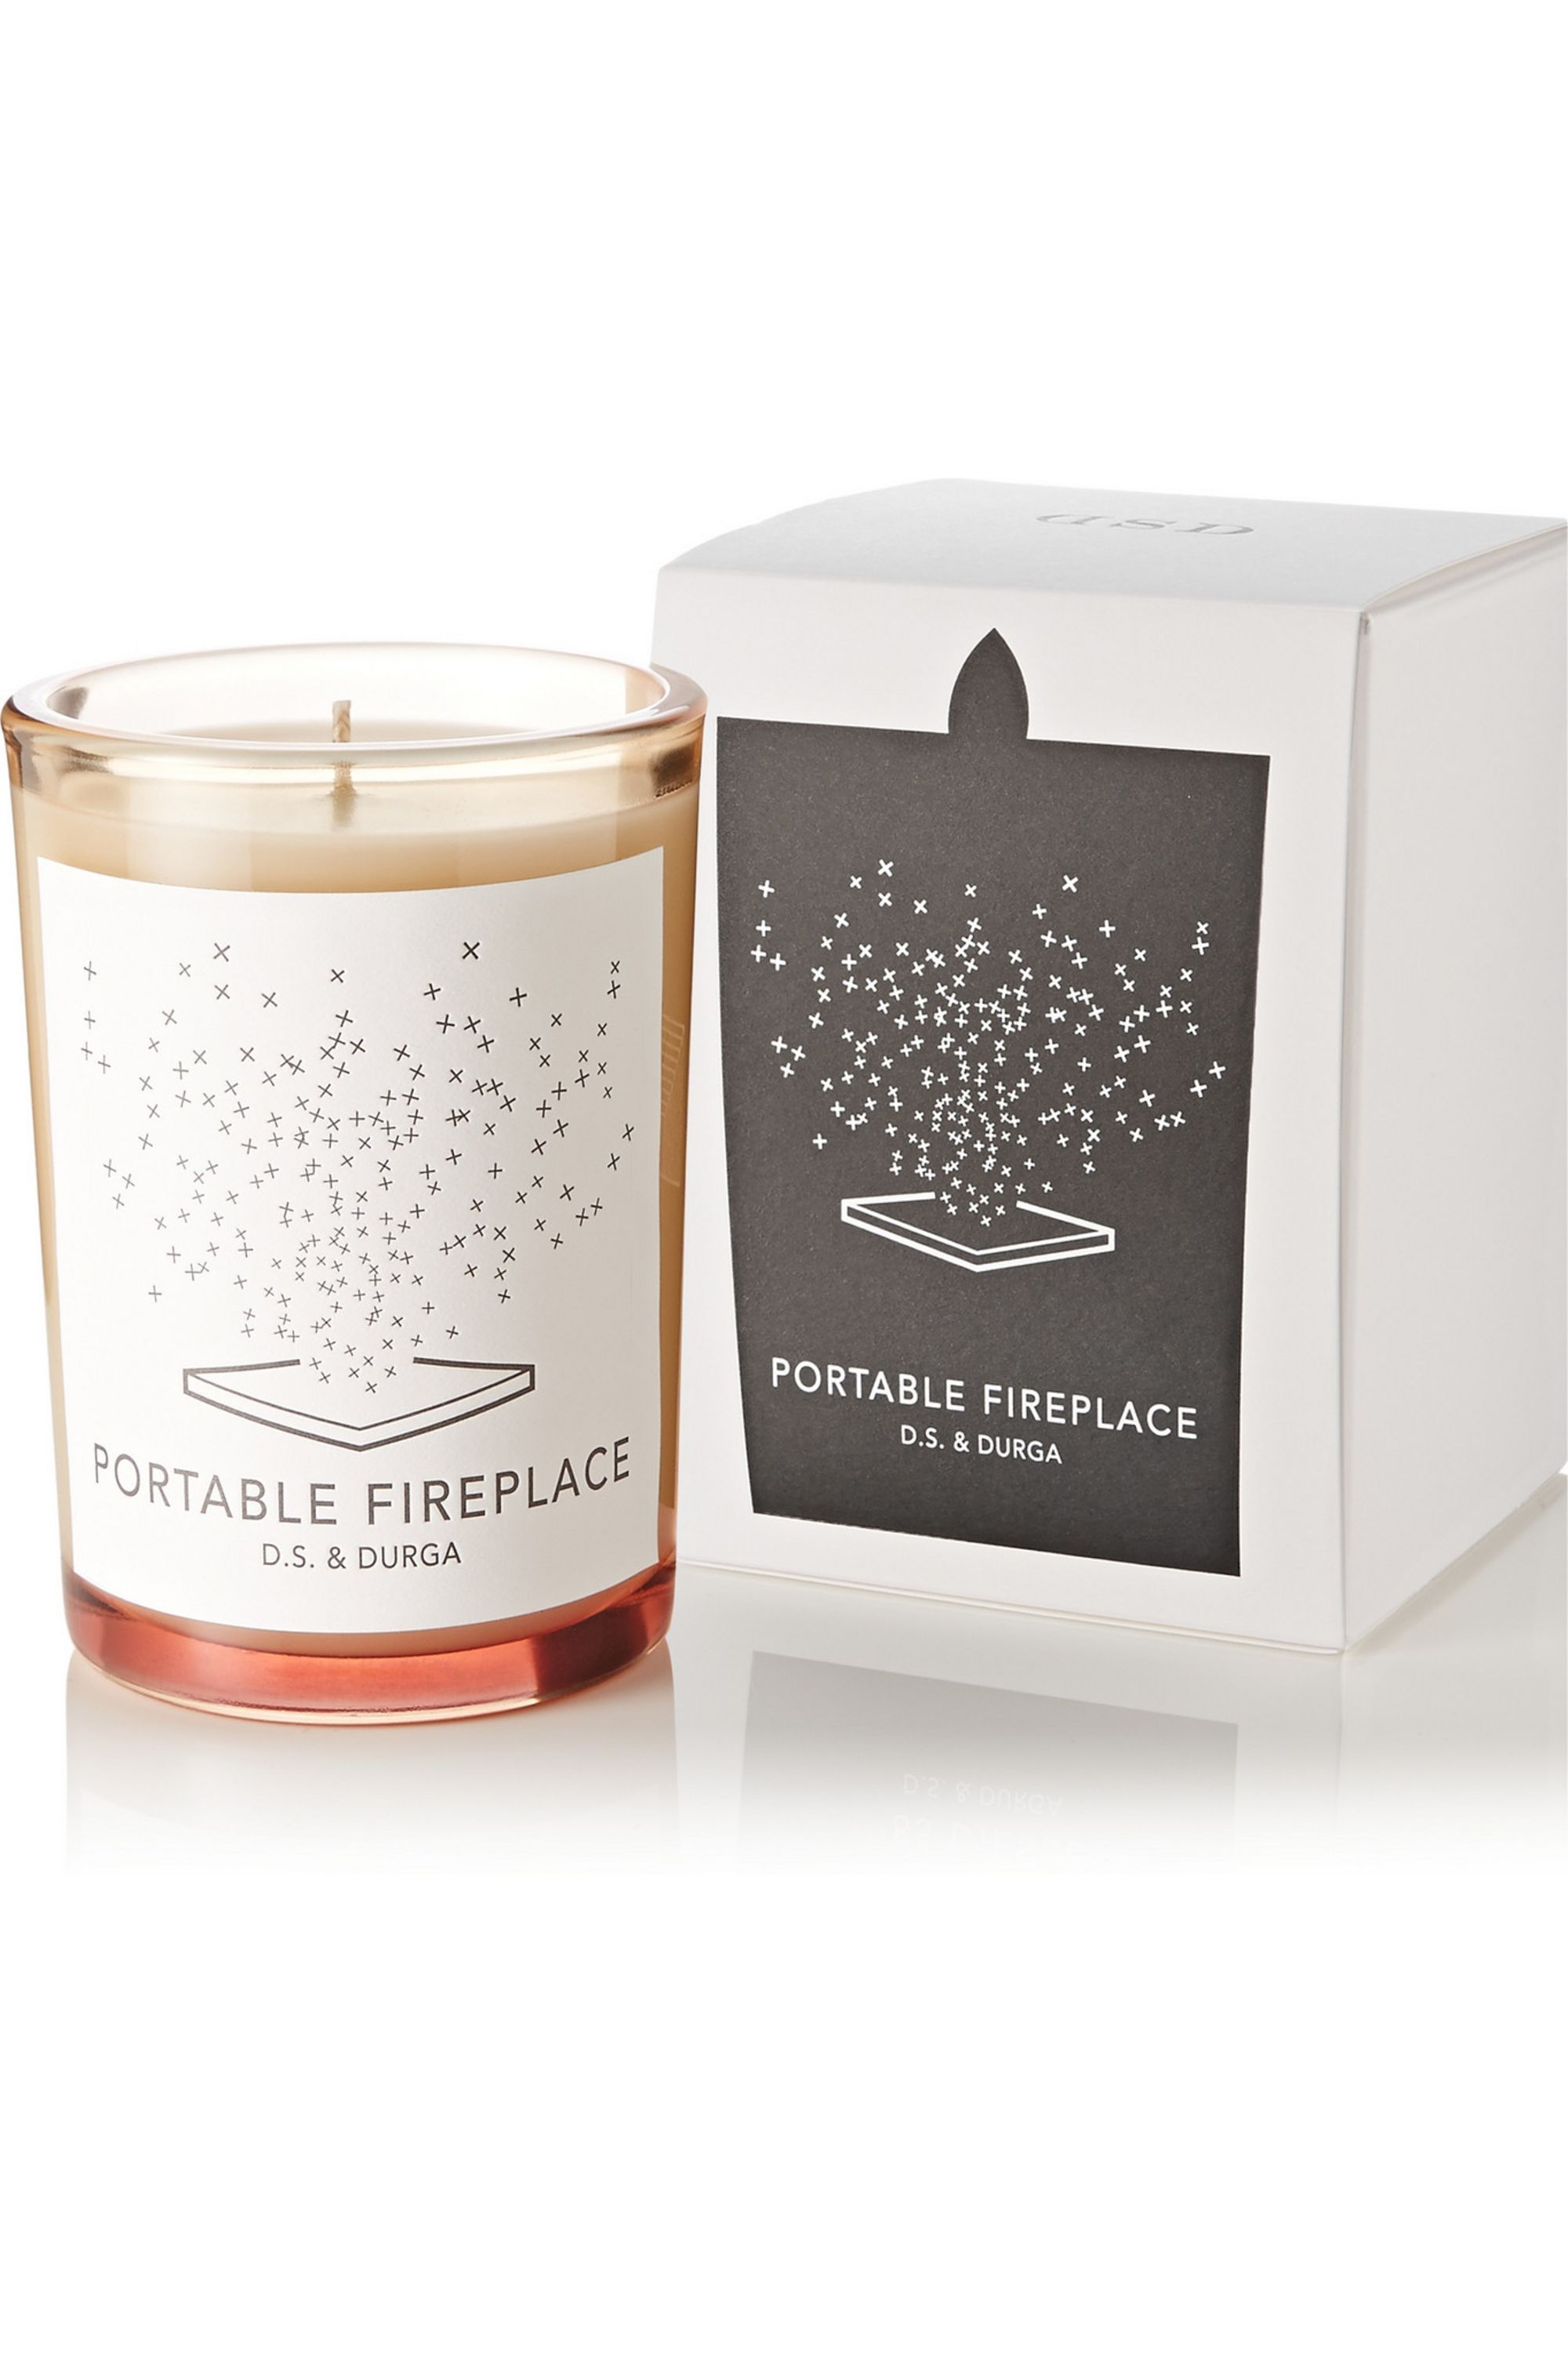 D.S. & Durga Portable Fireplace scented candle, 200g